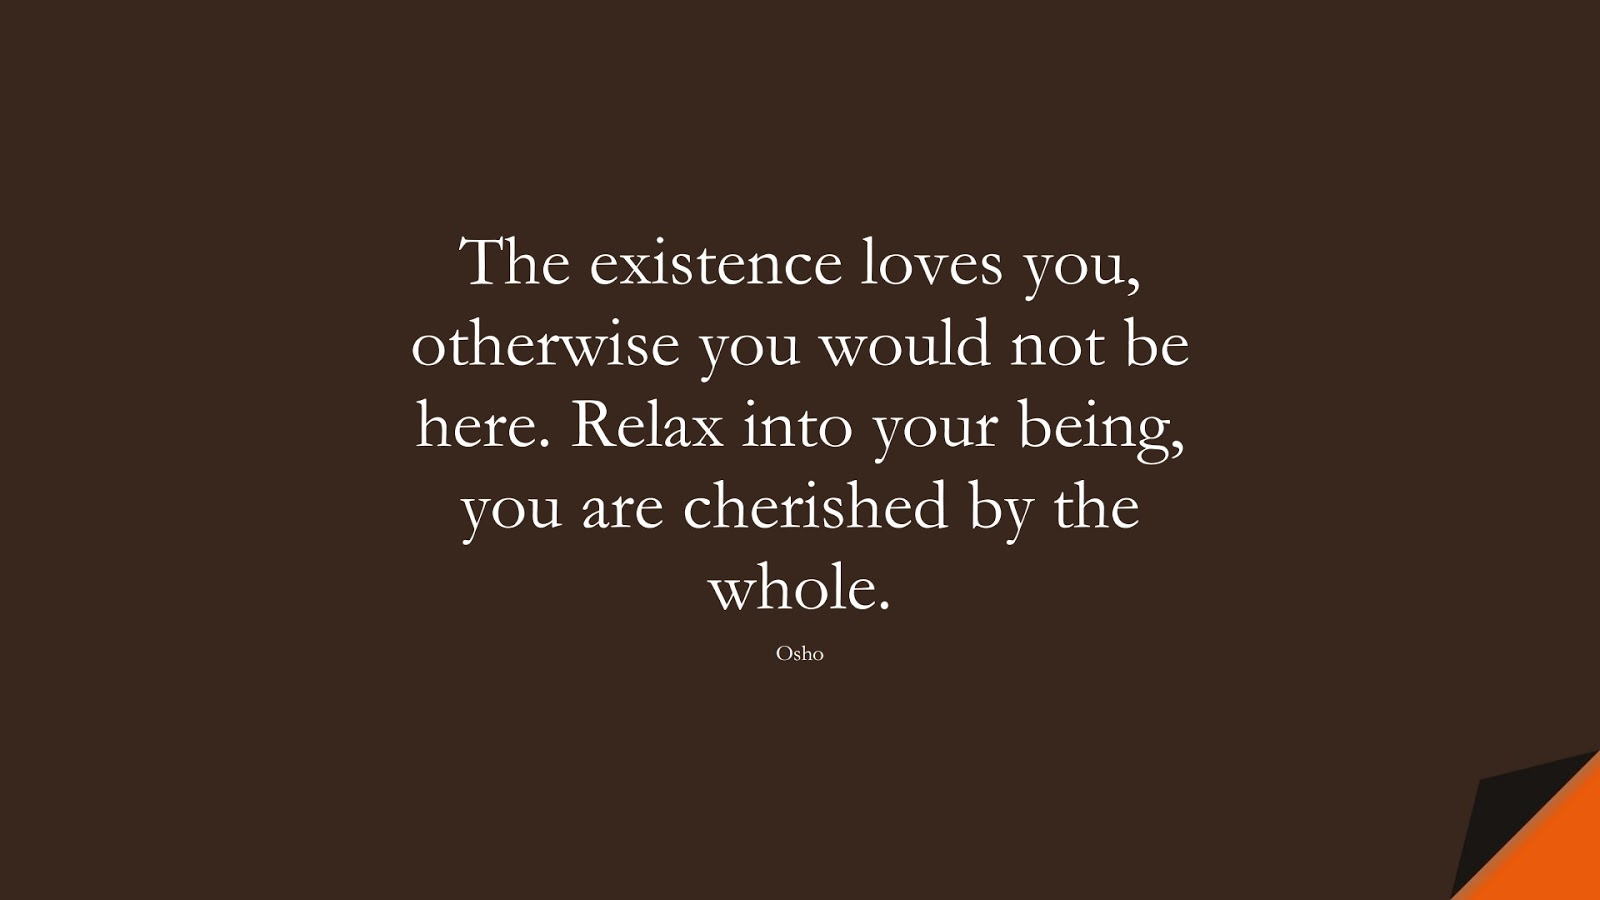 The existence loves you, otherwise you would not be here. Relax into your being, you are cherished by the whole. (Osho);  #CalmQuotes